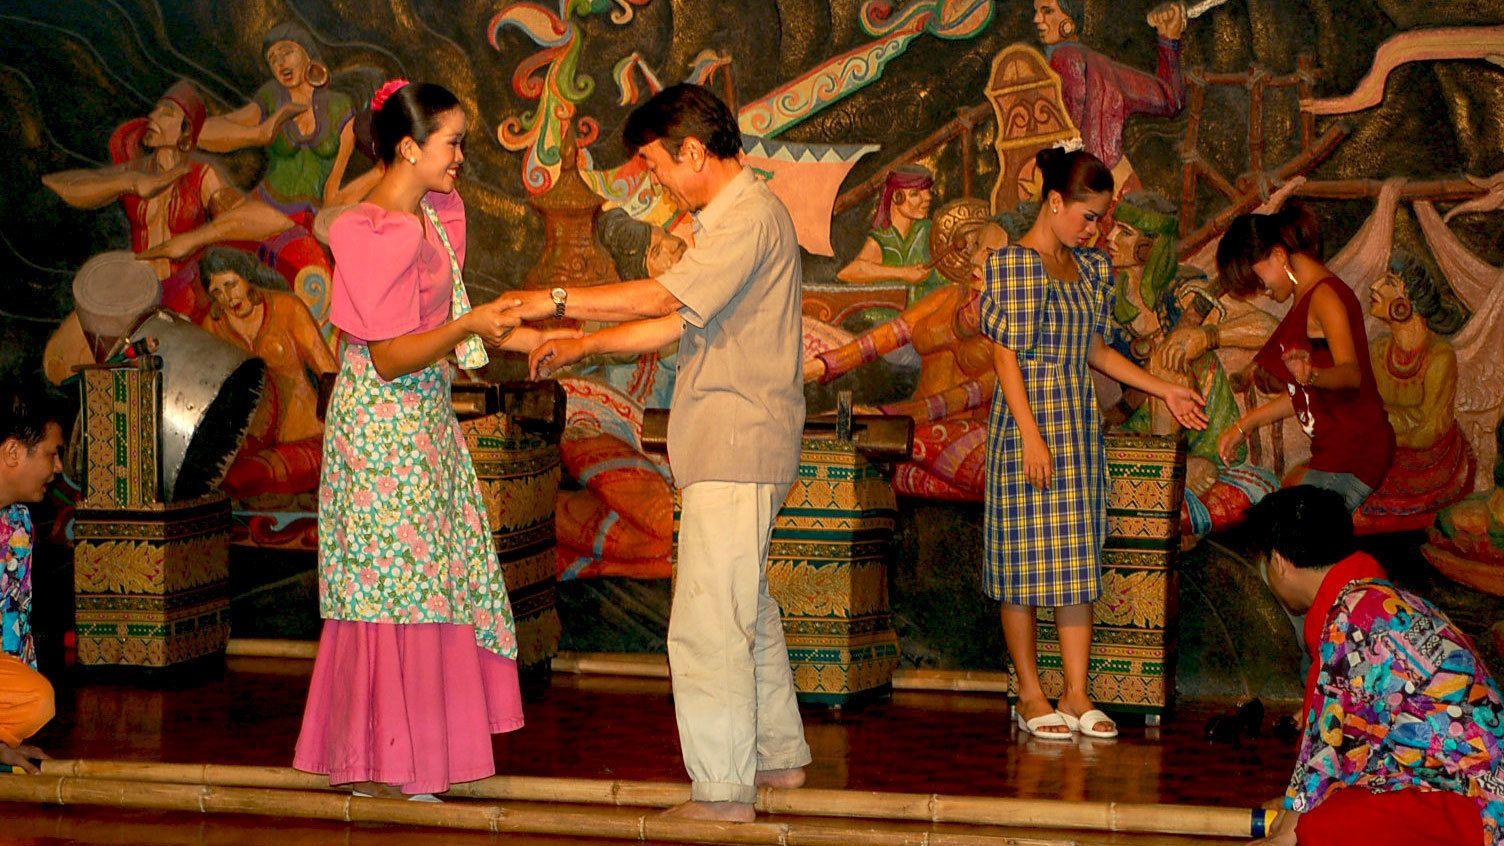 Audience members are invited onstage to dance with the performers during a show in Manila